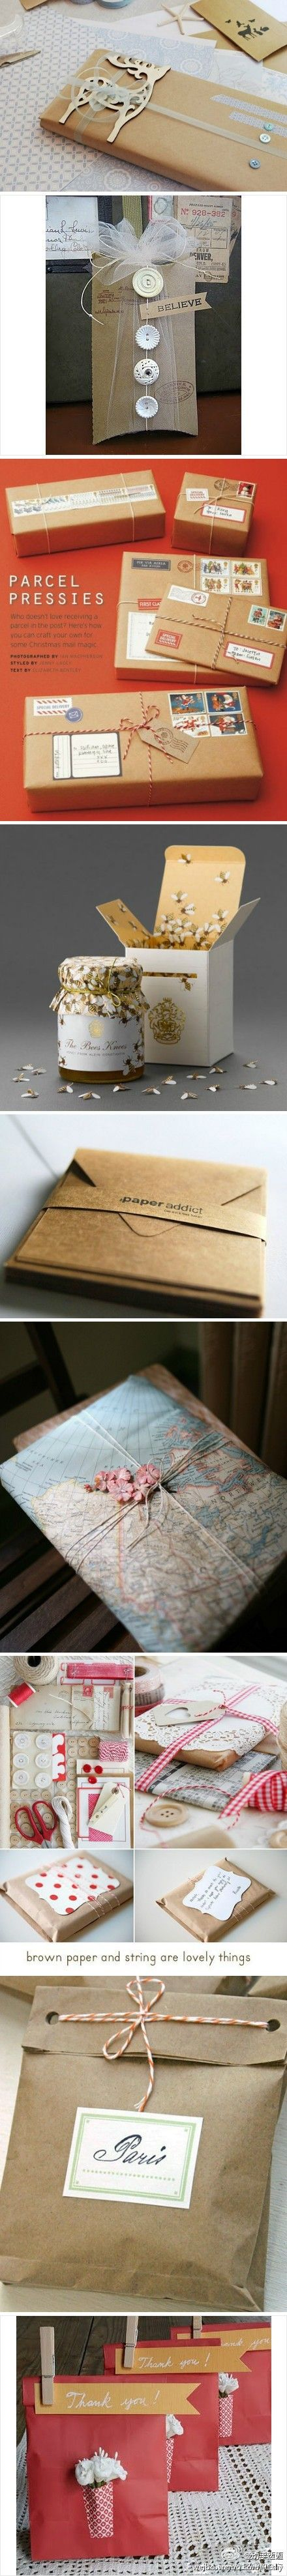 Gift and package wrapping